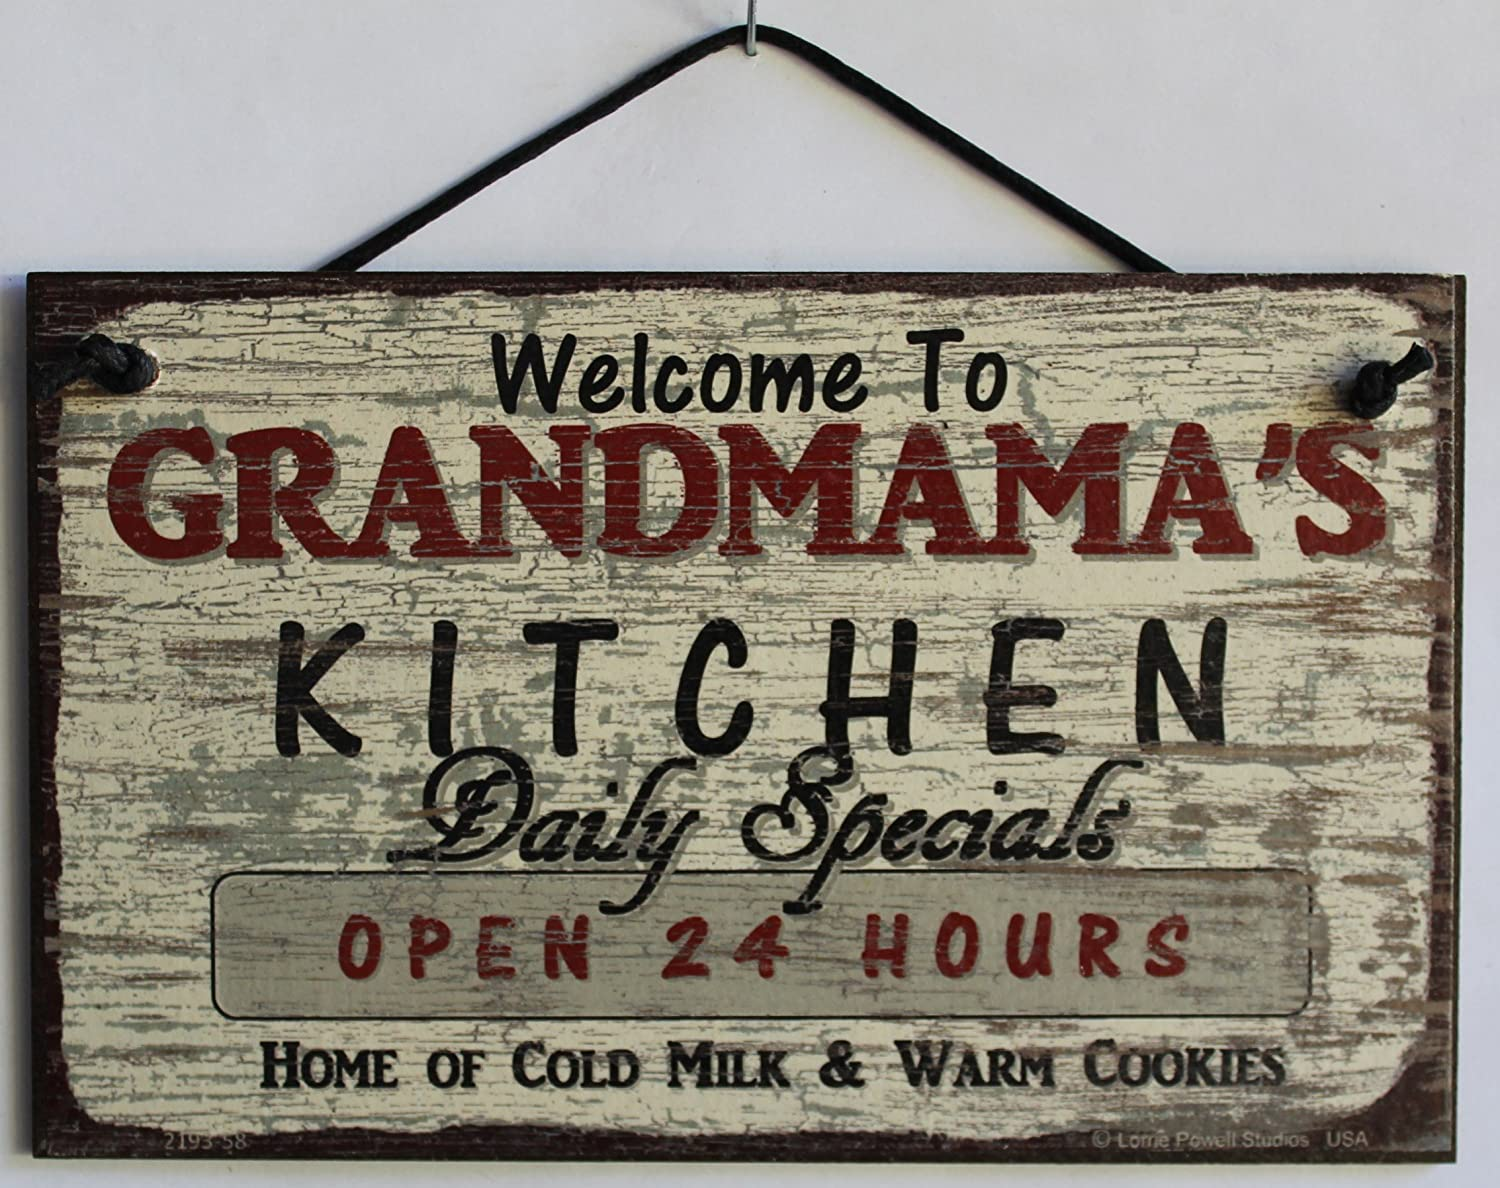 Egbert's Treasures 5x8 Vintage Style Sign Saying, Welcome to GRANDMAMA'S Kitchen Daily Specials Open 24 Hours Home of Cold Milk & Warm Cookies Decorative Fun Universal Household Signs from